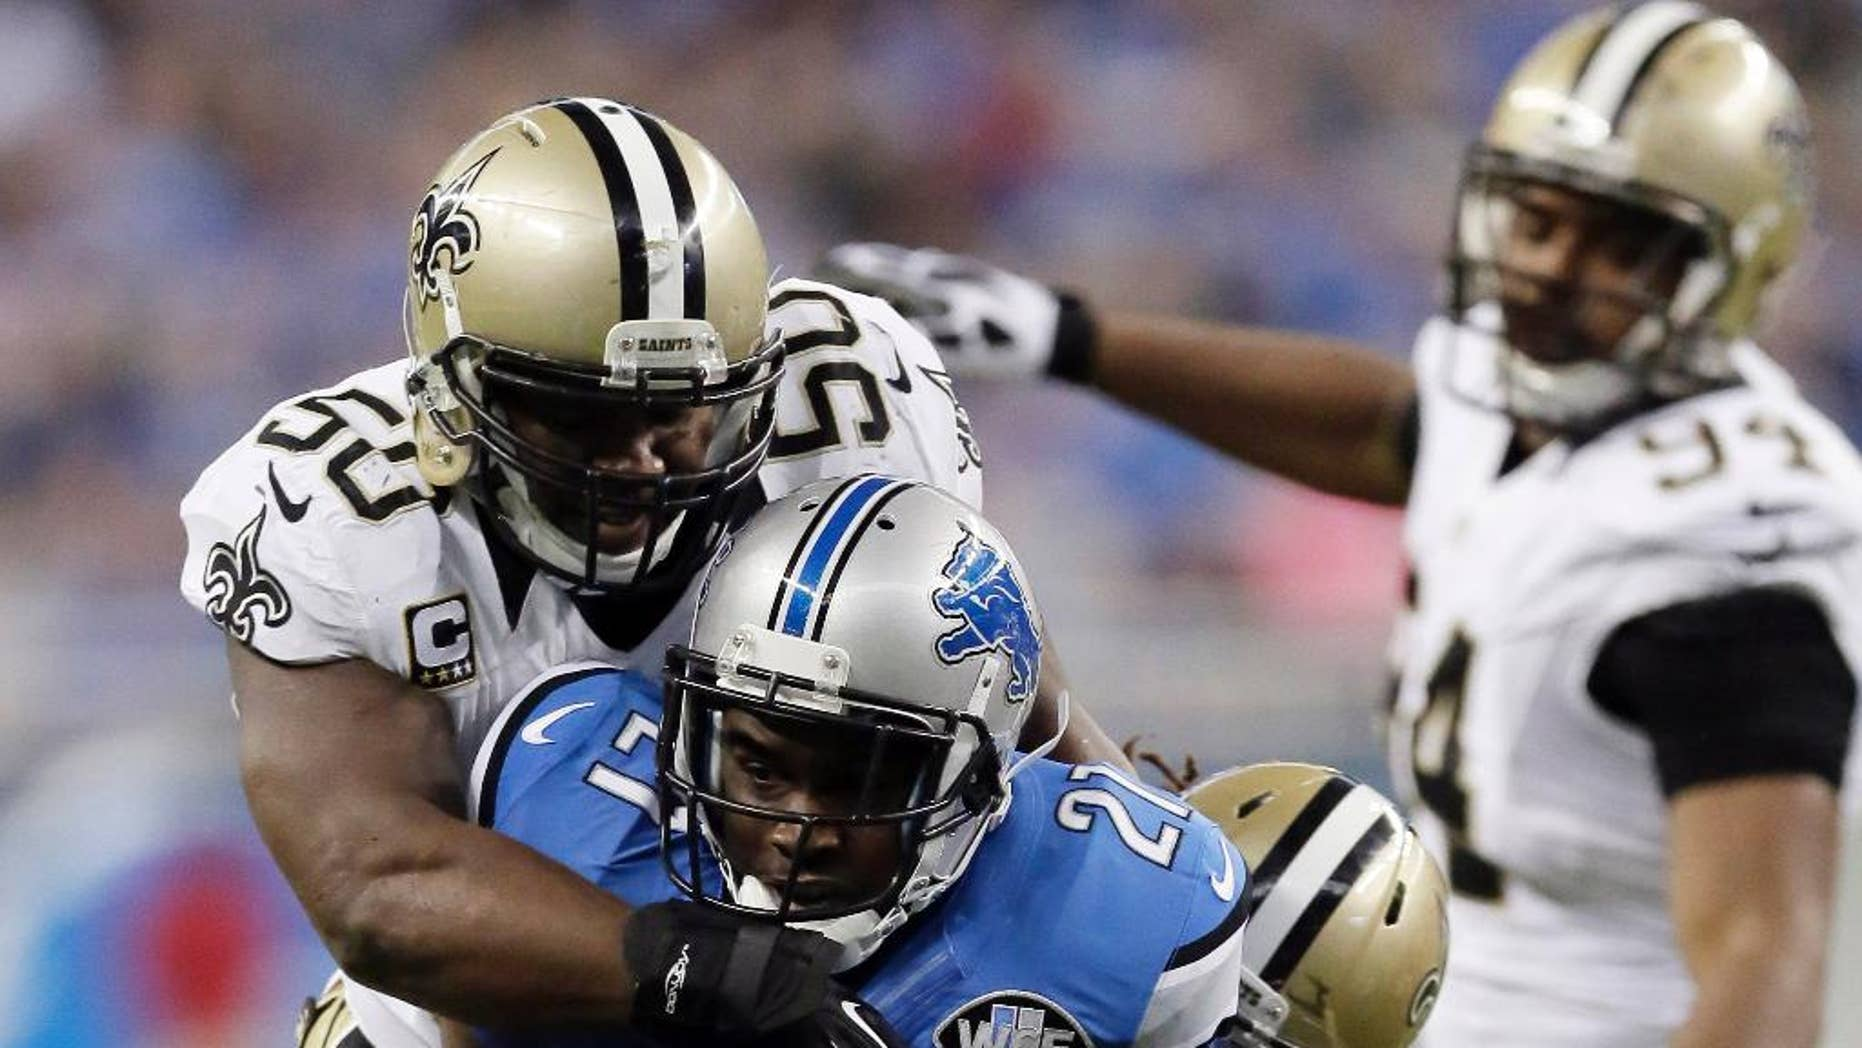 Detroit Lions running back Reggie Bush (21) is stopped by New Orleans Saints middle linebacker Curtis Lofton (50) and defensive back Marcus Ball (36) during the first half of an NFL football game in Detroit, Sunday, Oct. 19, 2014. (AP Photo/Duane Burleson) i